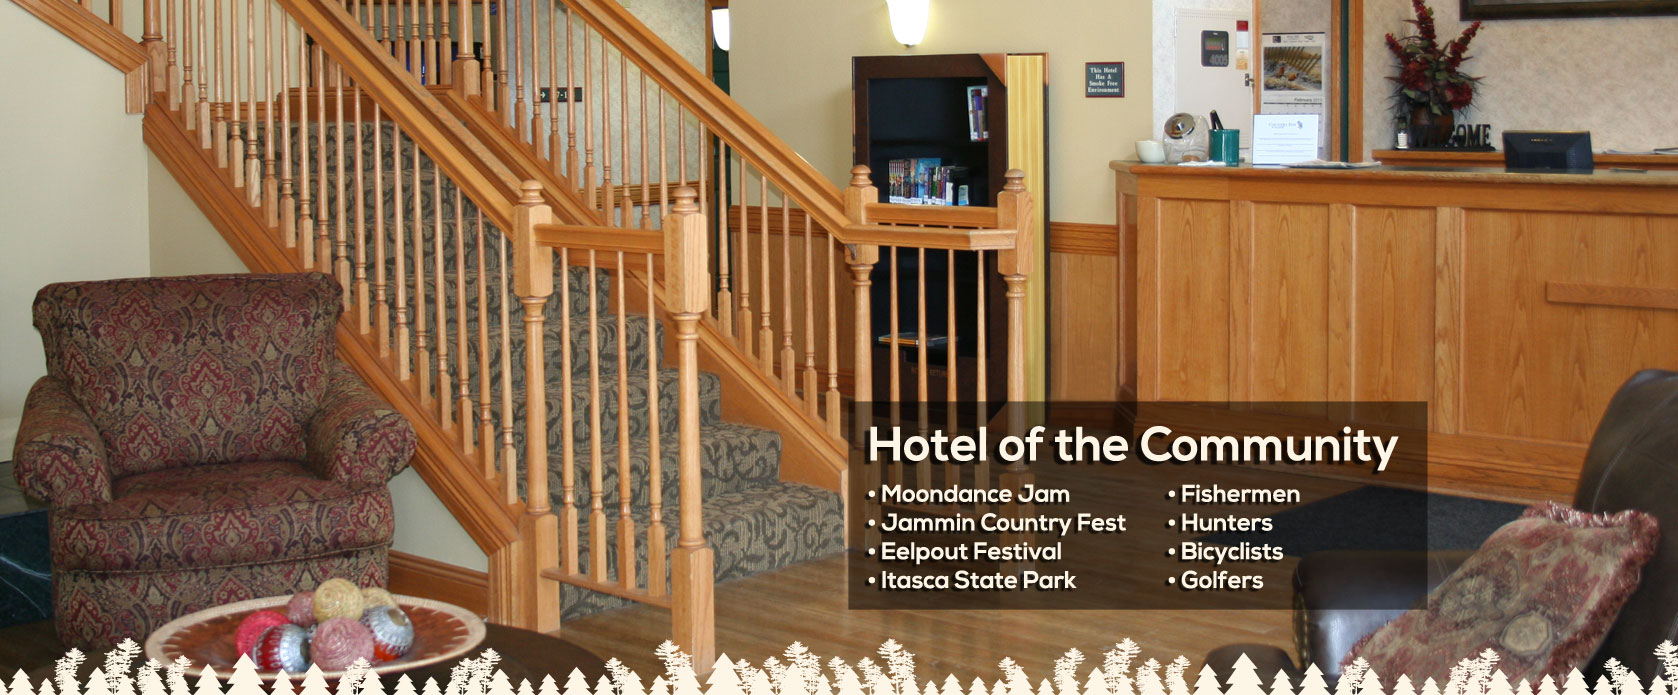 Nov 27,  · Now $99 (Was $̶1̶2̶1̶) on TripAdvisor: Country Inn Walker, Walker. See traveler reviews, 39 candid photos, and great deals for Country Inn Walker, ranked #1 of 7 hotels in Walker and rated of 5 at TripAdvisor/5().